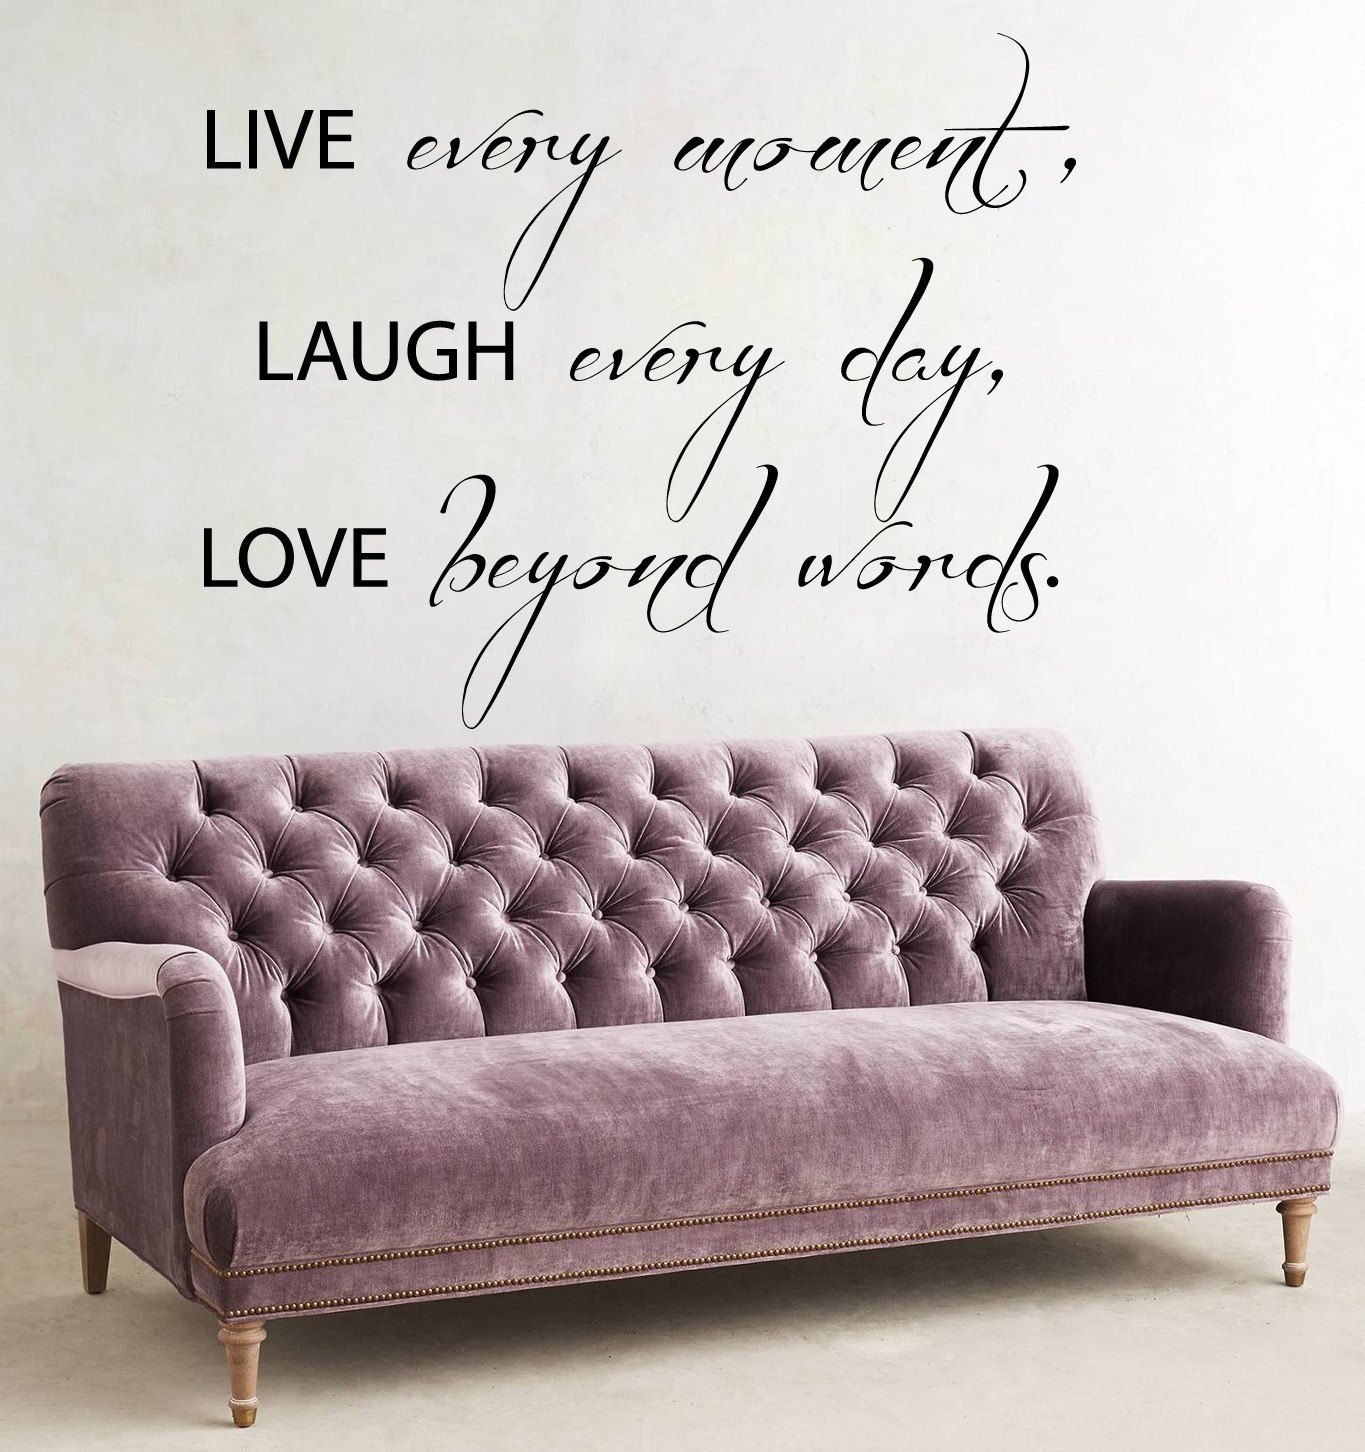 Wall Decals Quote Live Every Moment Laugh Every Day Love Beyond ...